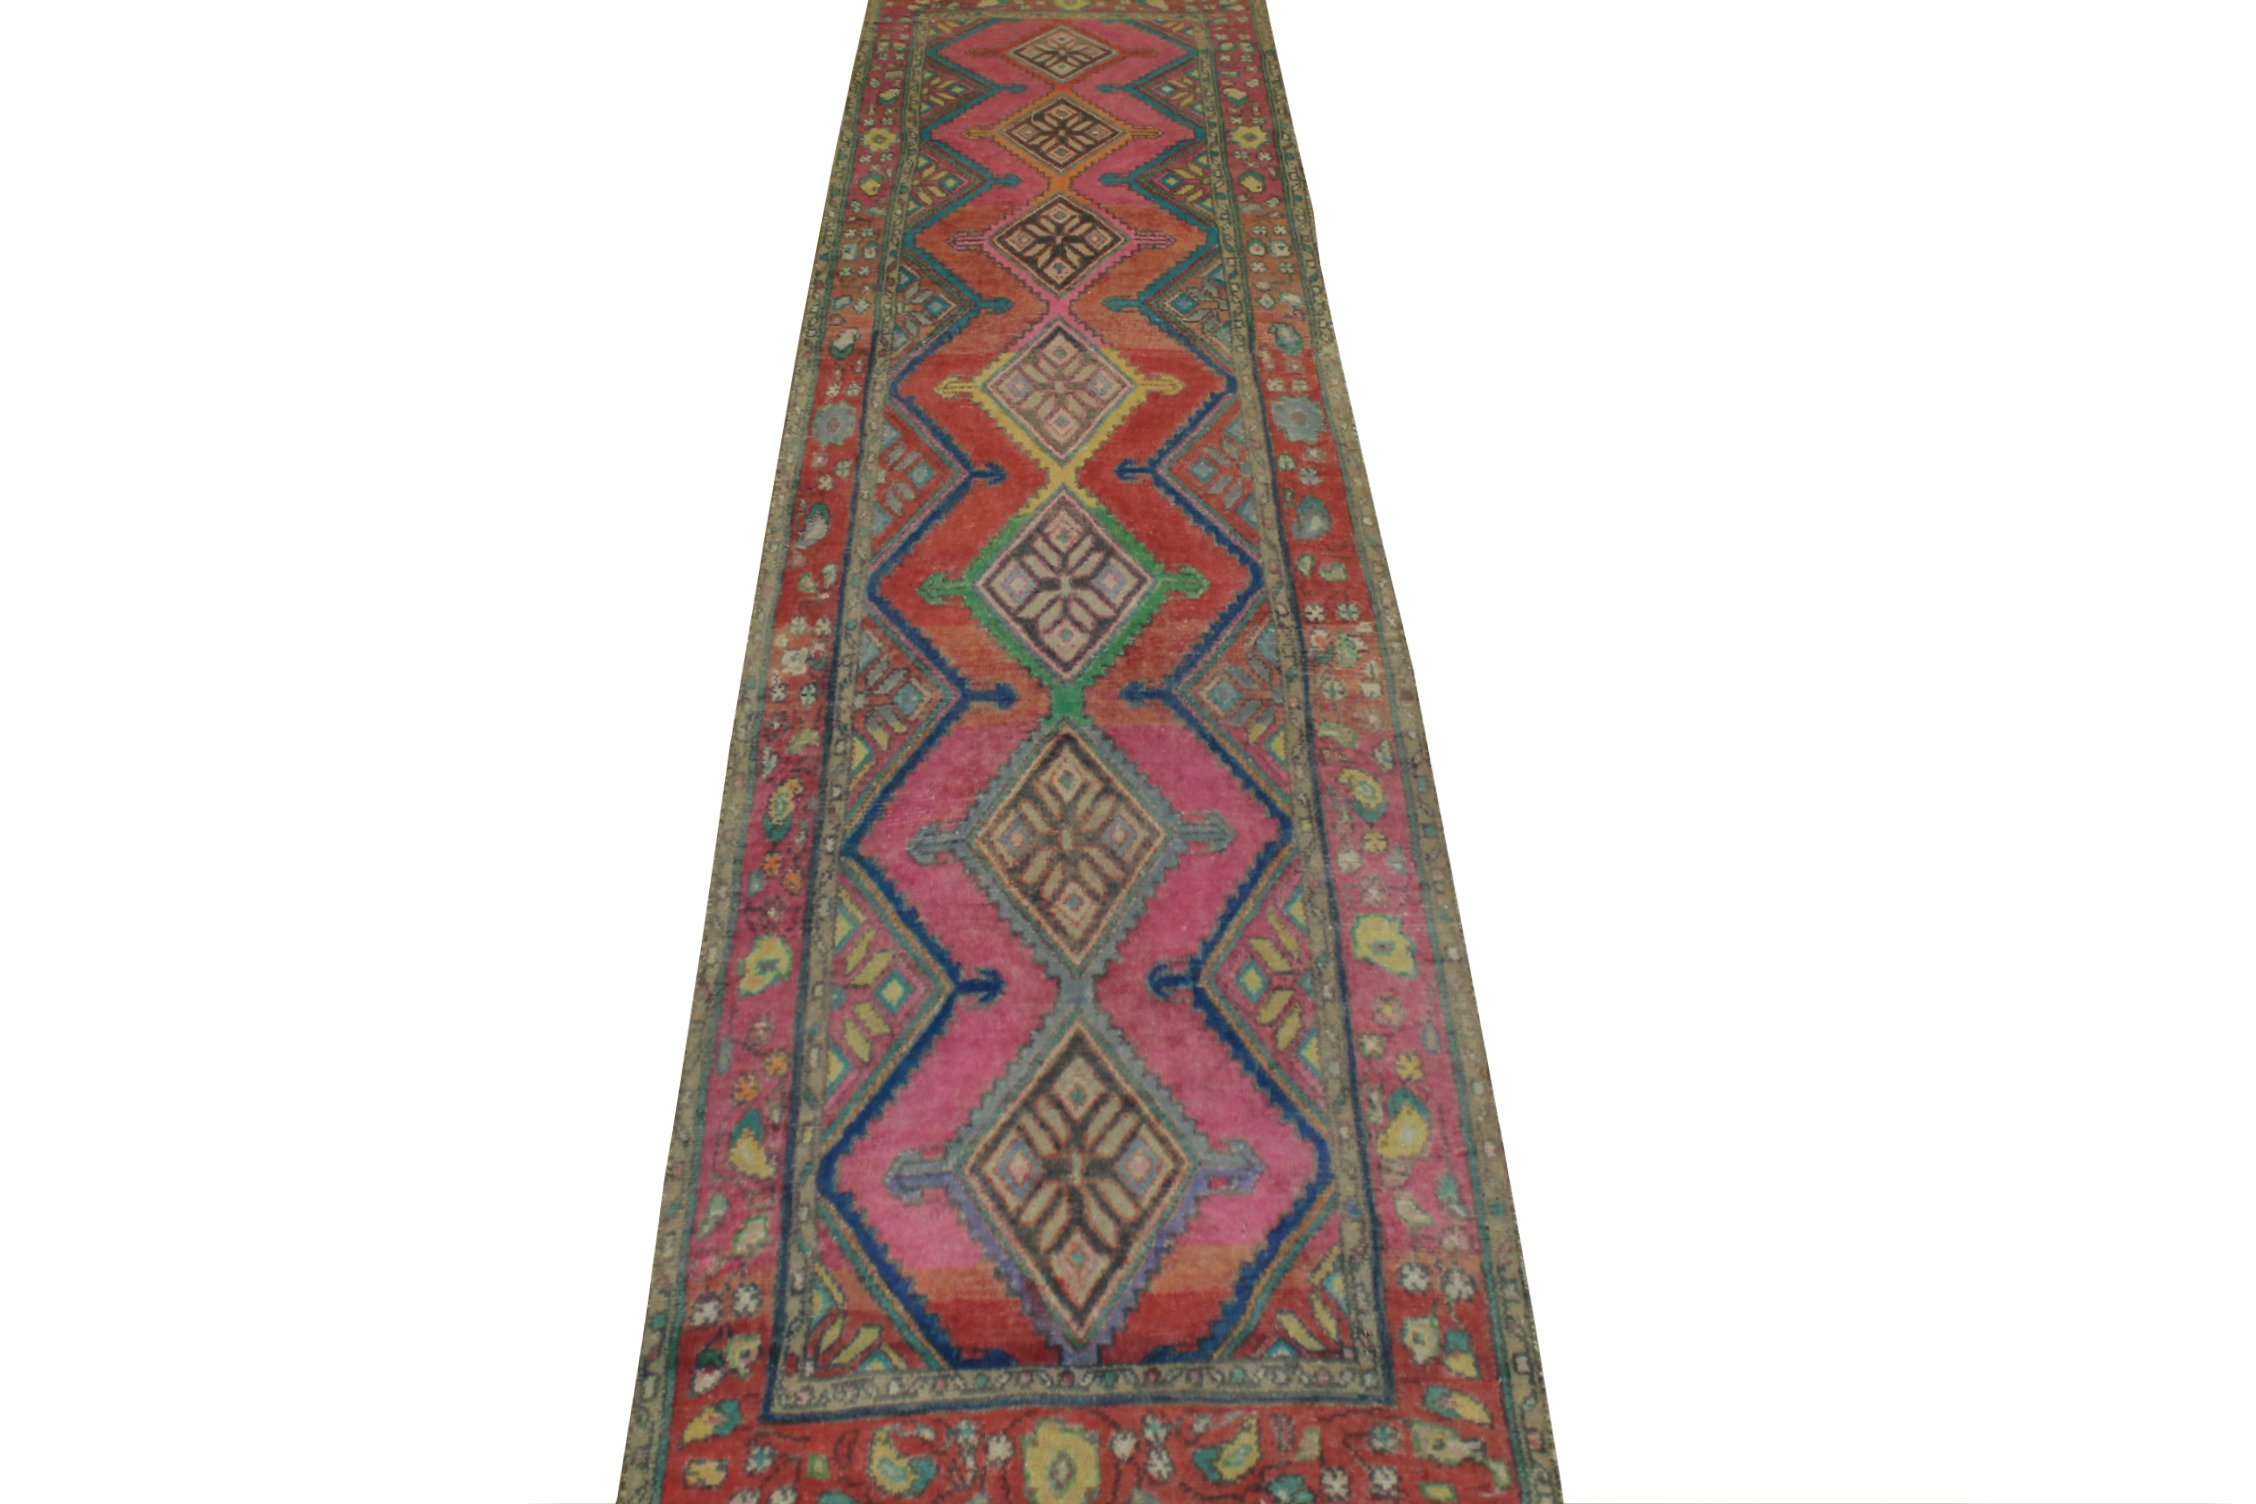 10 ft. Runner Vintage Hand Knotted Wool Area Rug - MR024456